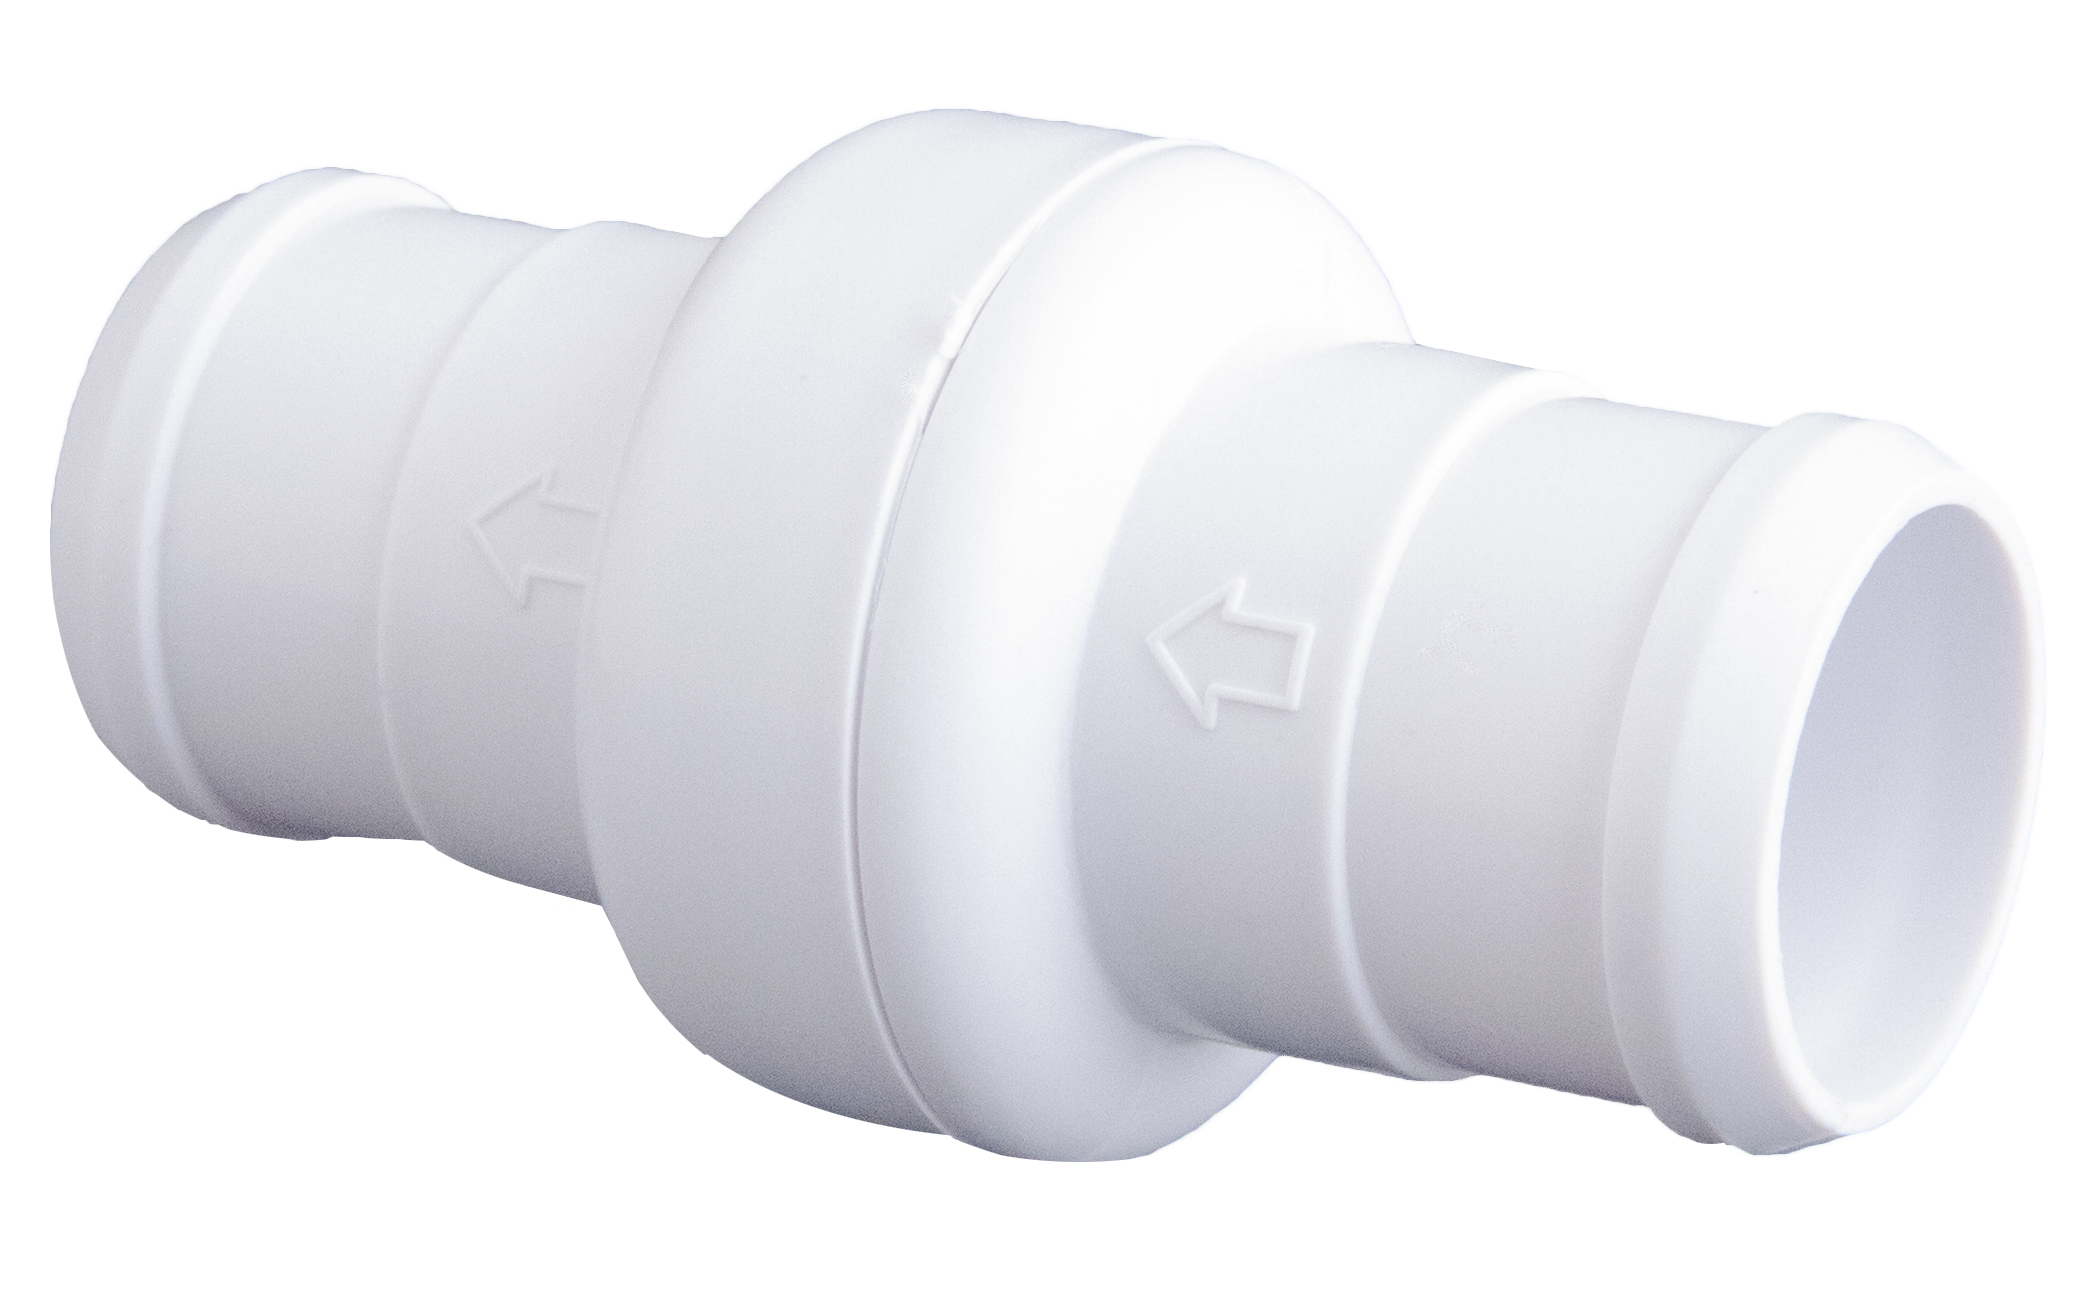 <b>Hose Swivel <br>for Auto Cleaner <br></b>Replacements for Zodiac's 360 Style Components